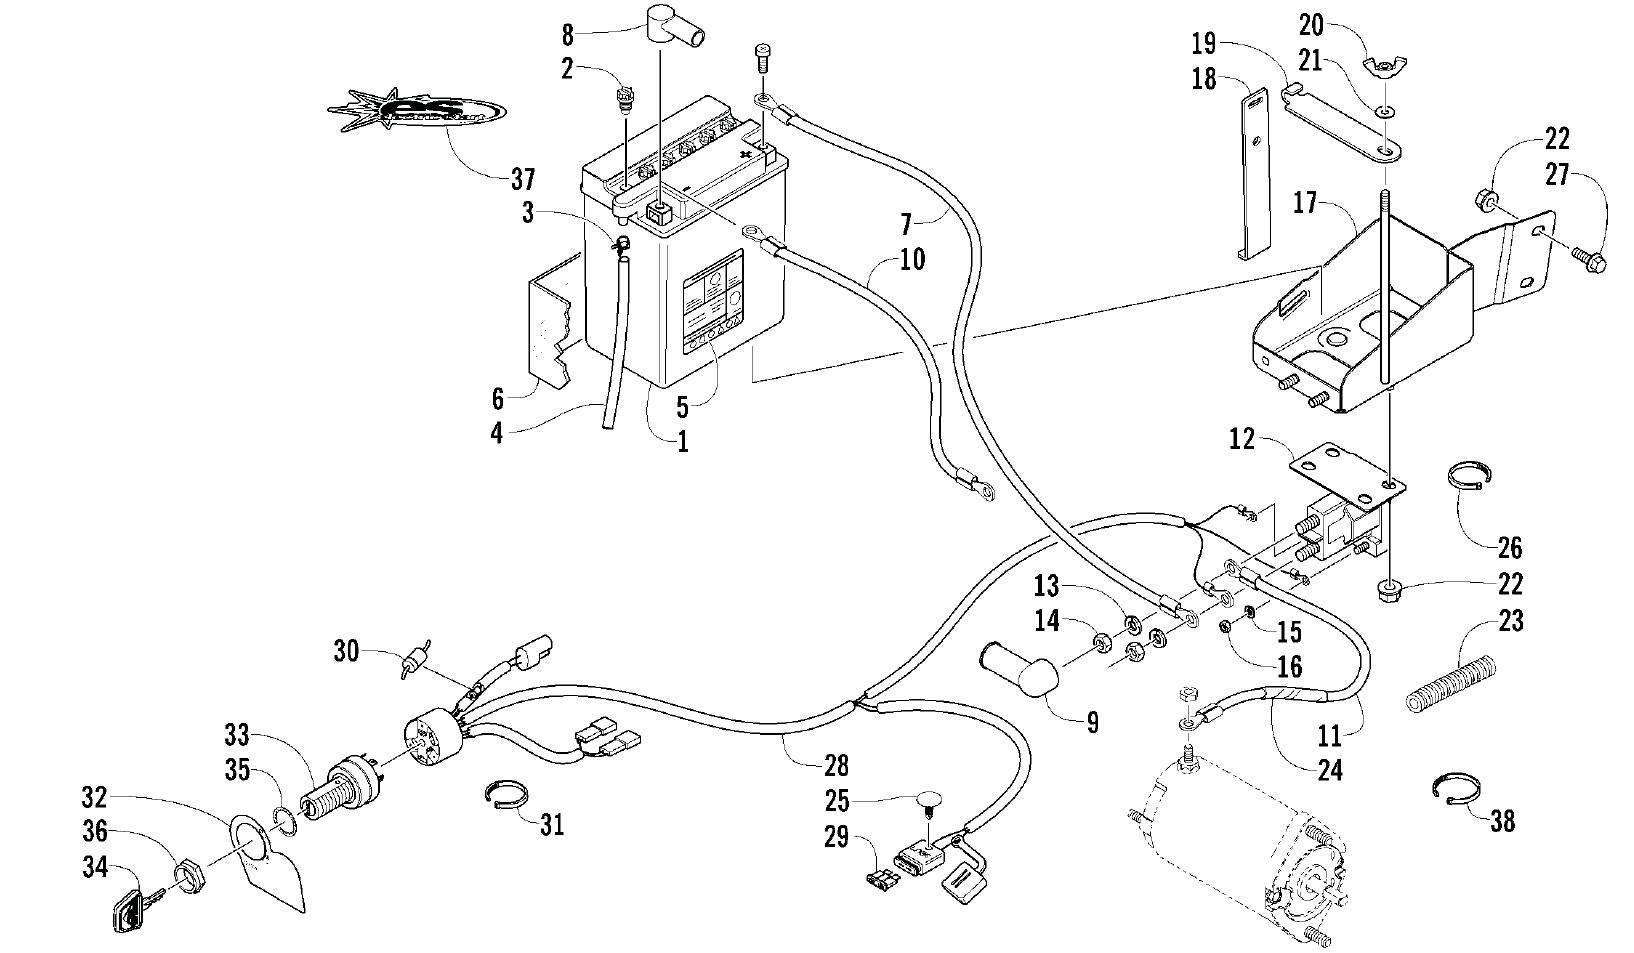 hight resolution of arctic cat 250 wiring schematic schematic diagram wiring diagram 1998 arctic cat 500 atv wiring diagram